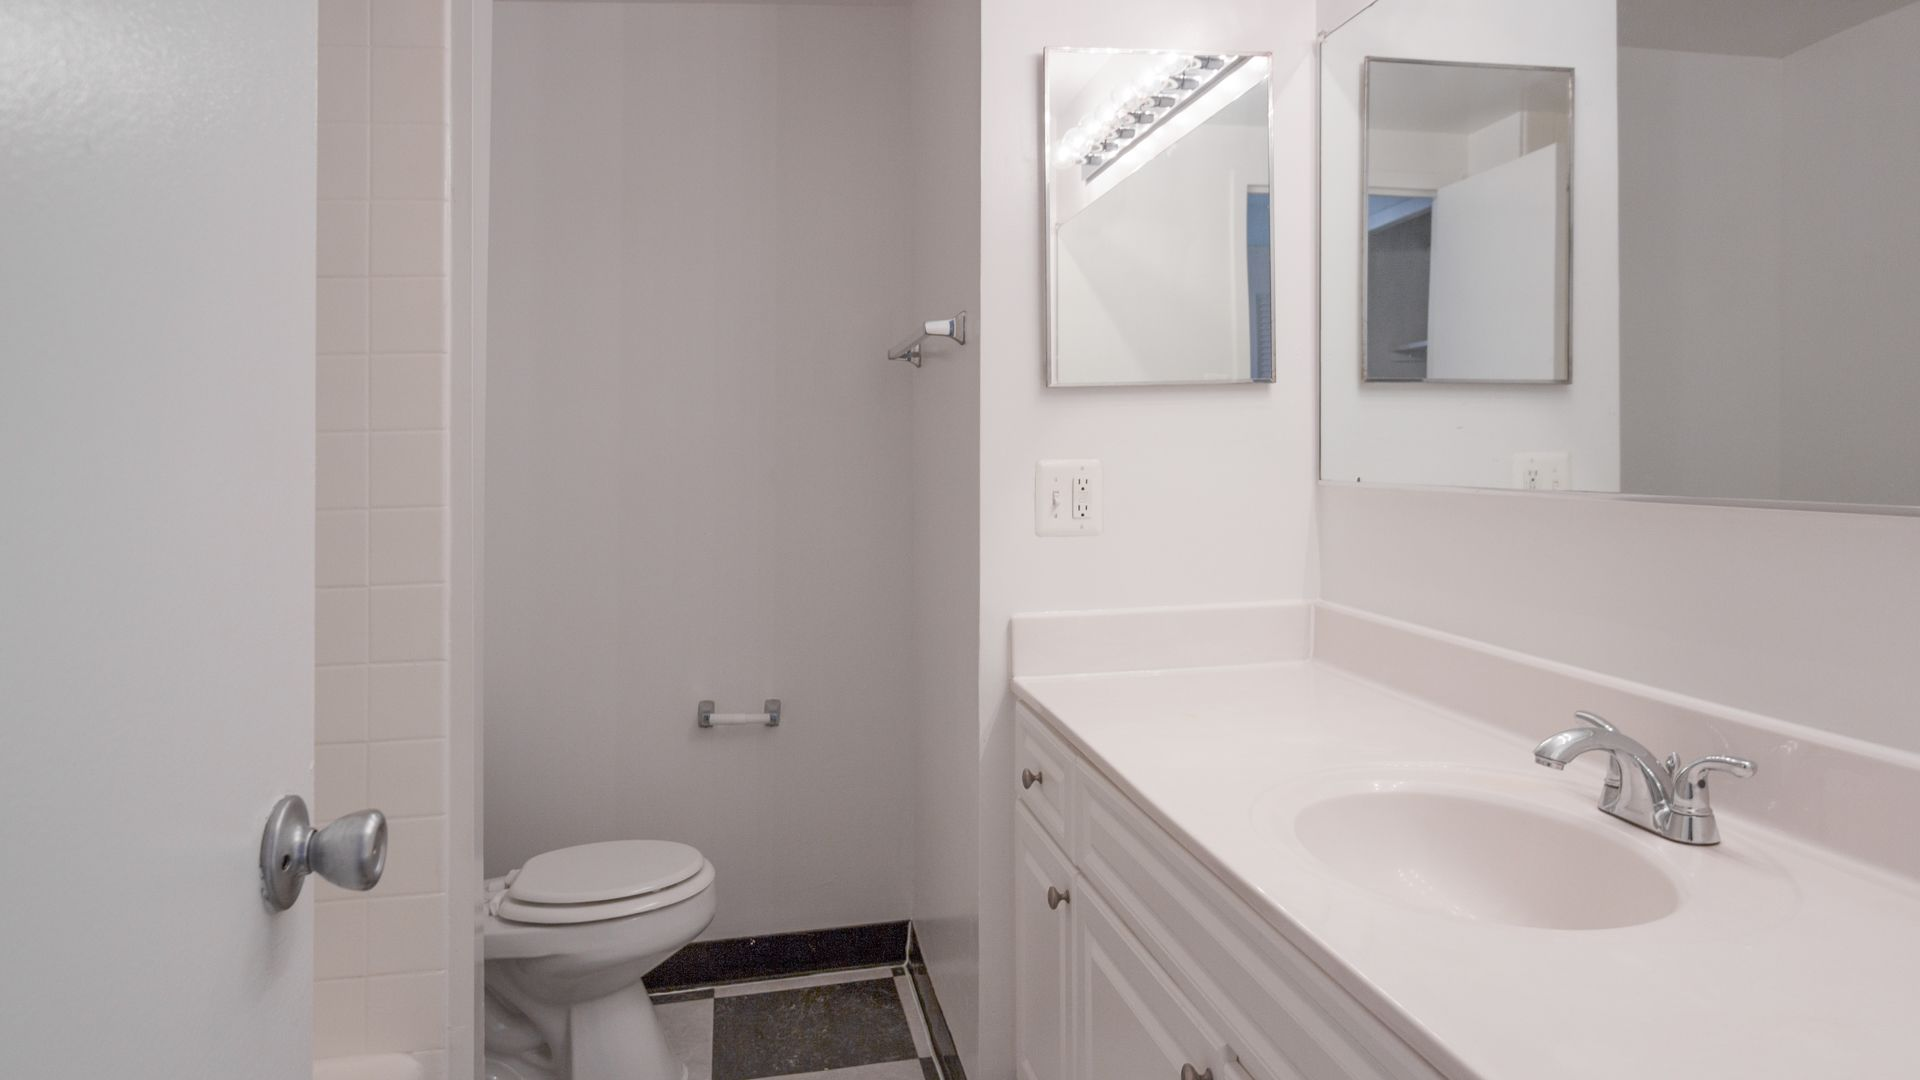 Apartments inside bathroom - Skyline Towers Apartments In Baileys Crossroads 5599 Seminary Rd Equityapartments Com